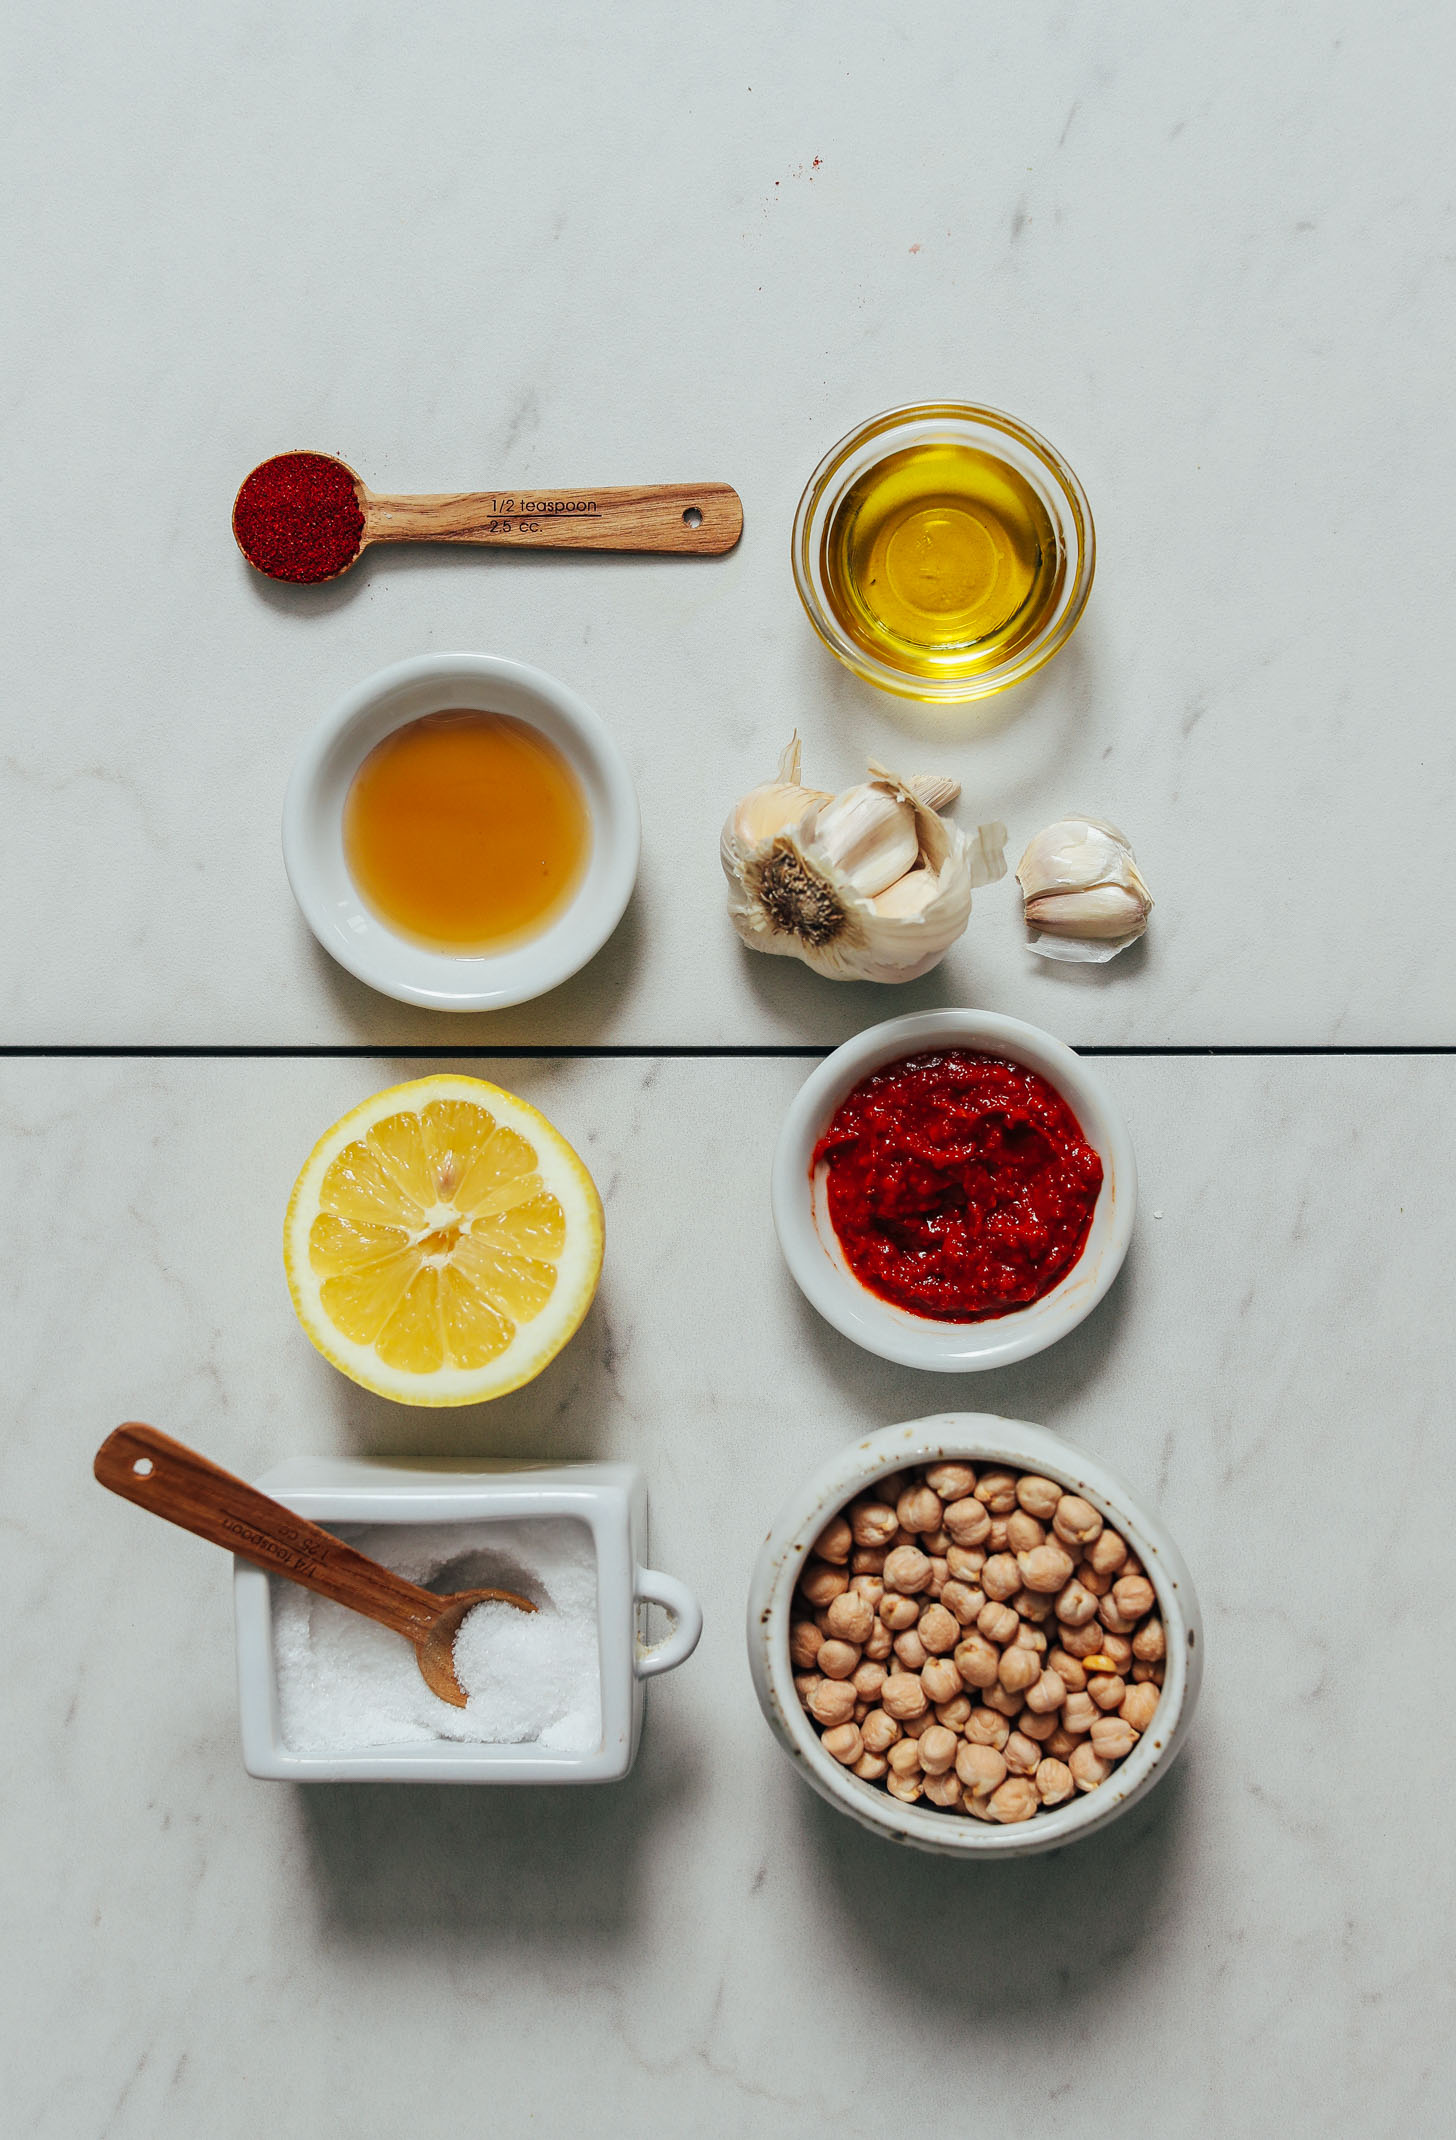 Spoons and dishes or salt, lemon juice, maple syrup, paprika, olive oil, garlic, harissa paste, and dry chickpeas